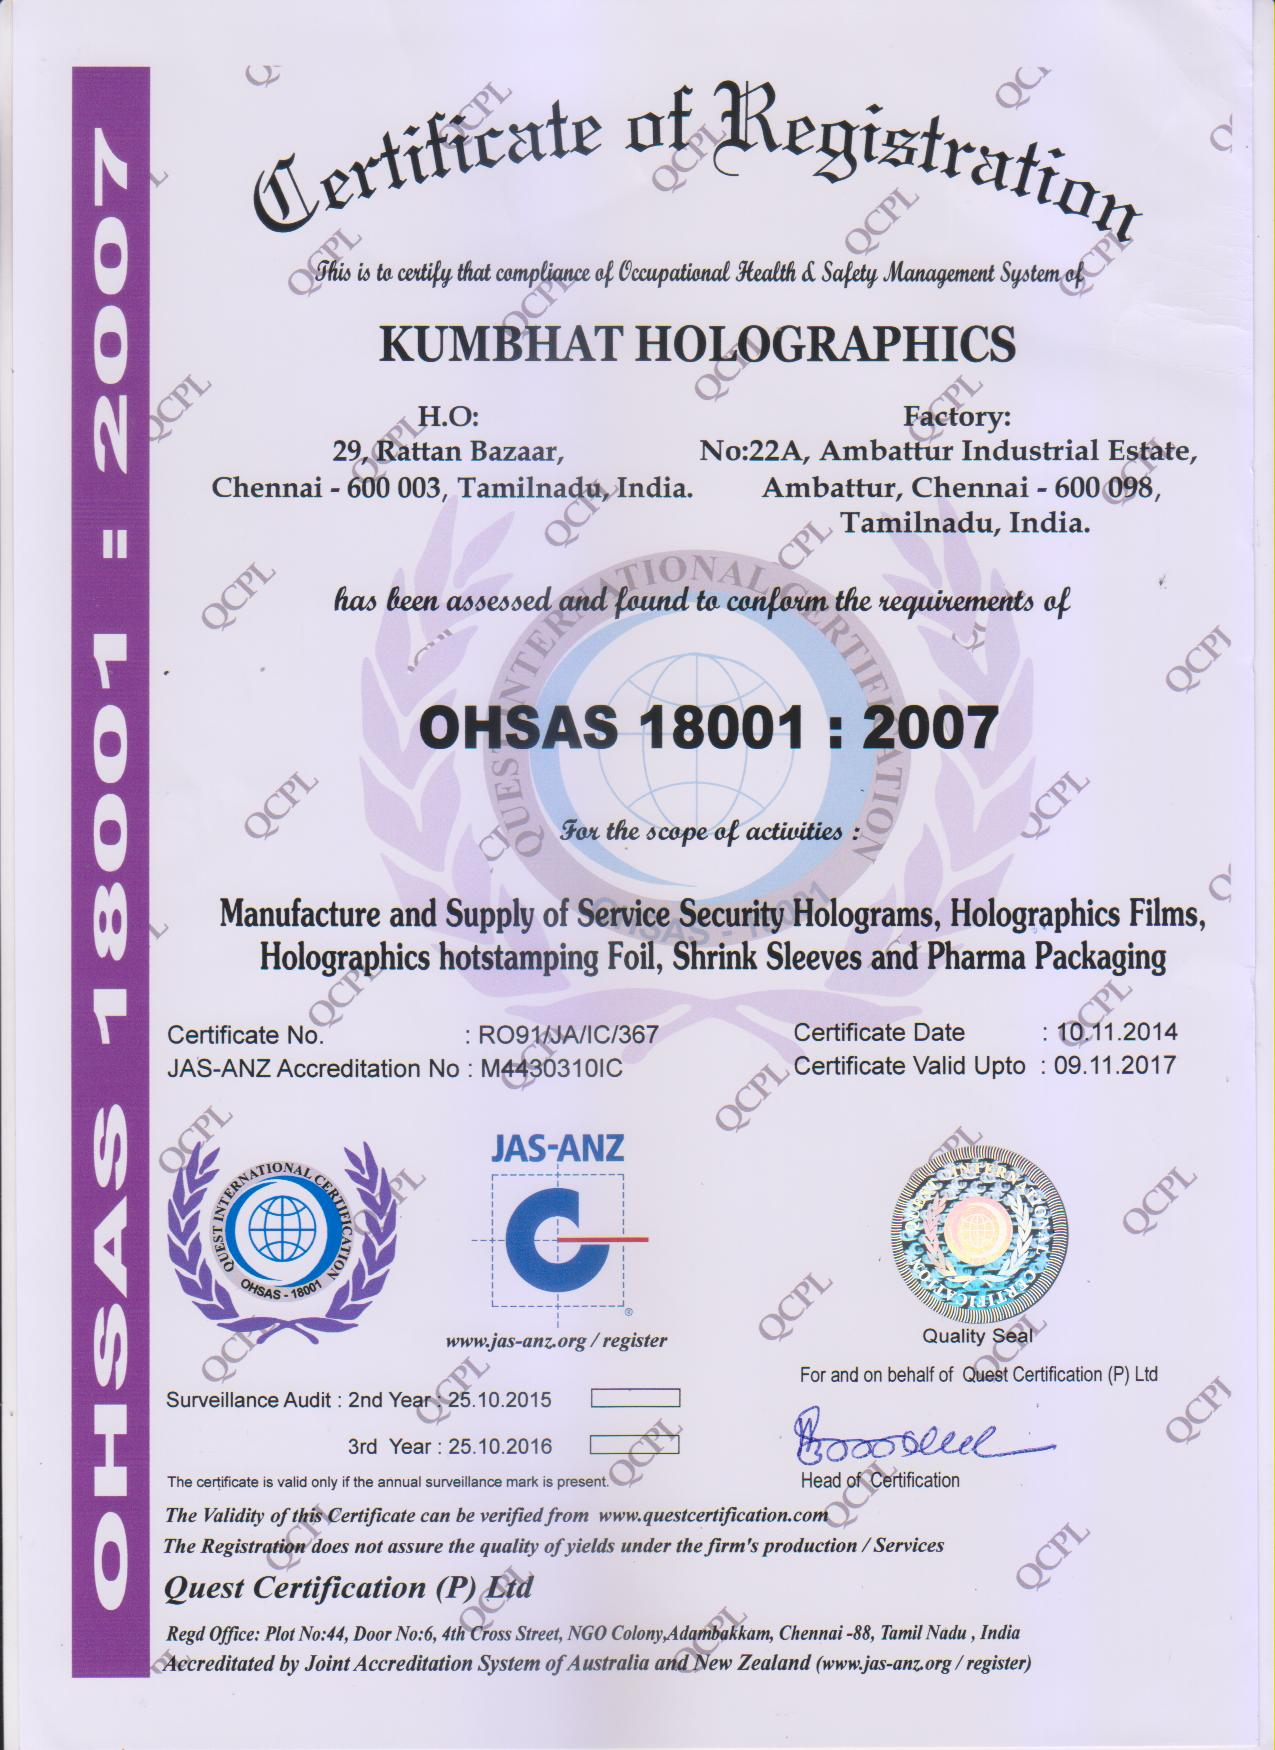 iso-18001-2007-20171